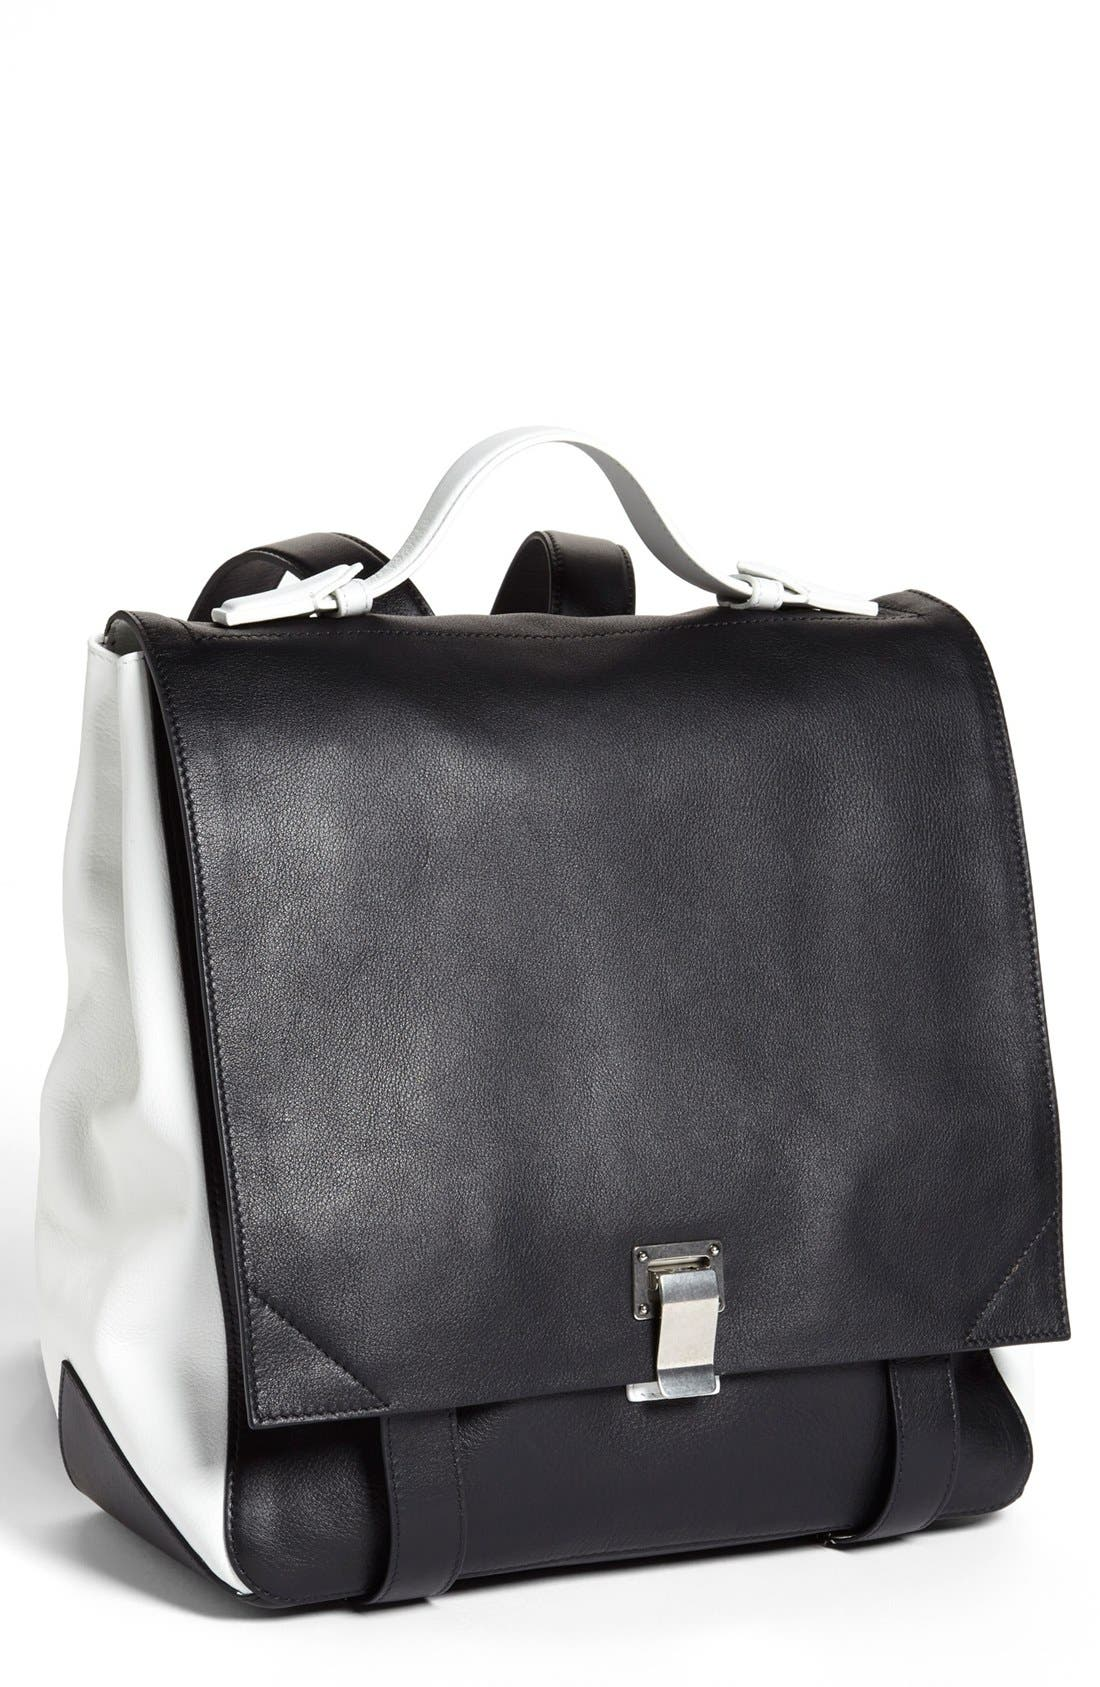 PROENZA SCHOULER, Calfskin Leather Backpack, Alternate thumbnail 3, color, 010